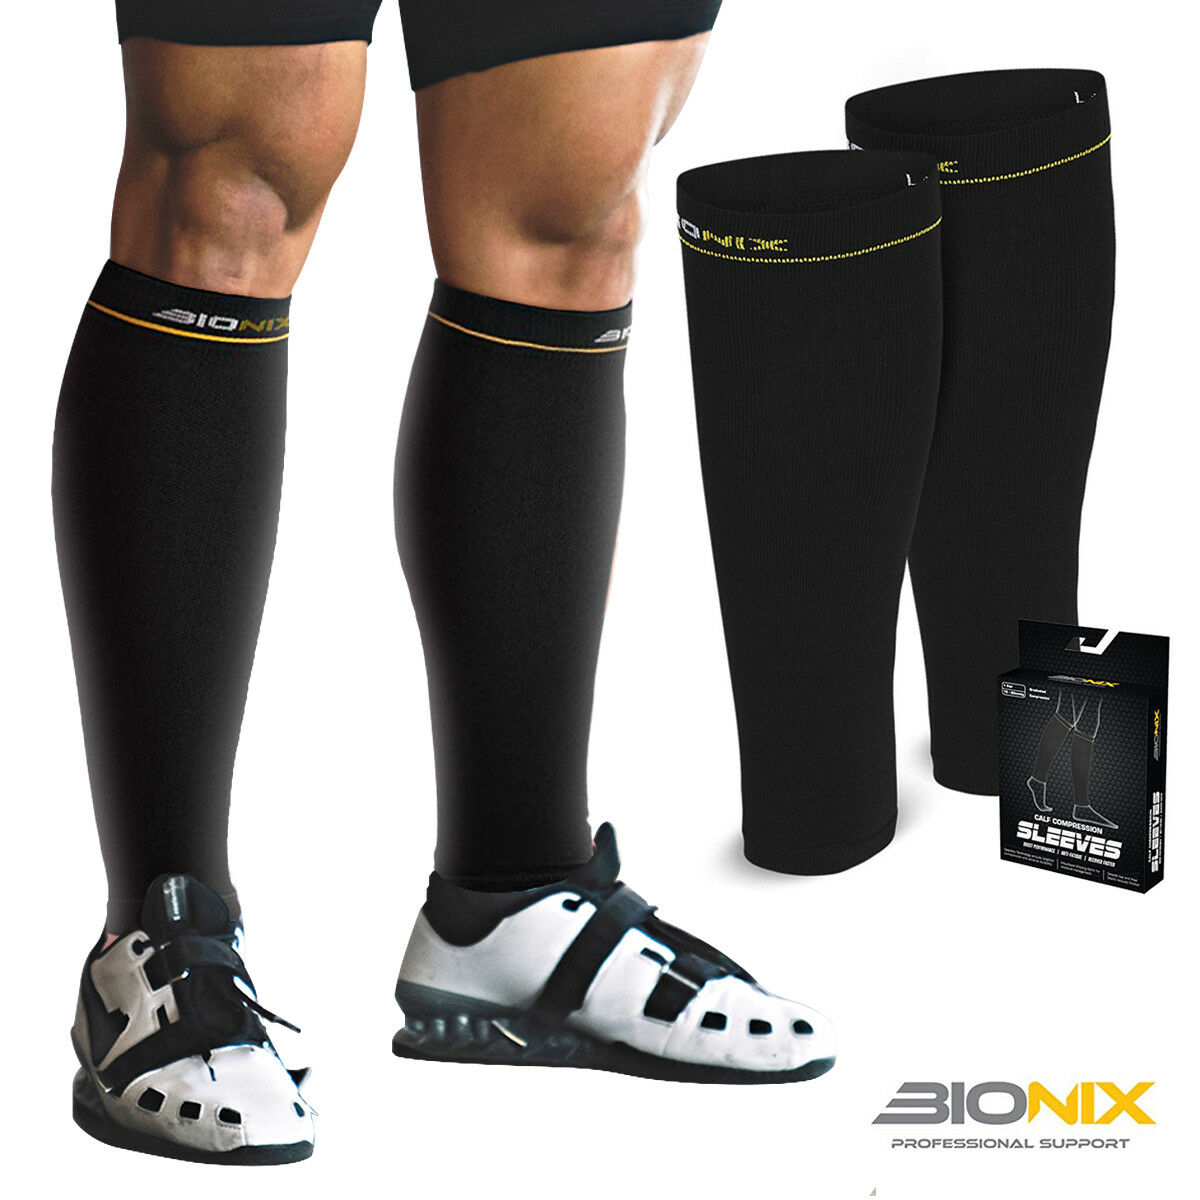 bb0e73d4cd Compression Calf Sleeves Pair Shin Splints Running Support Guards Socks  Cycling for sale